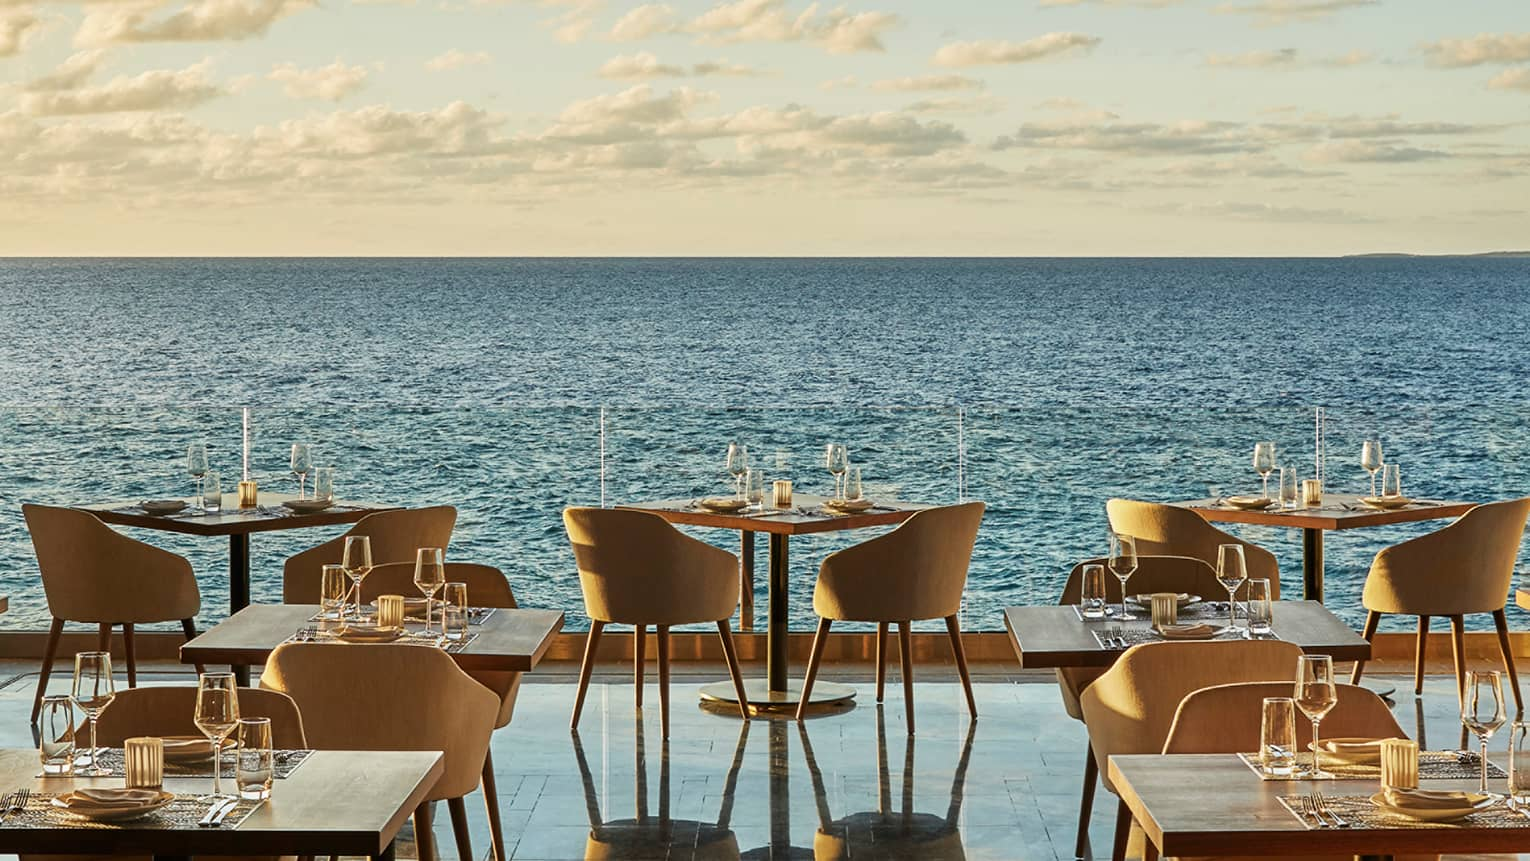 Dining tables, chairs for two in row along outdoor bar overlooking ocean